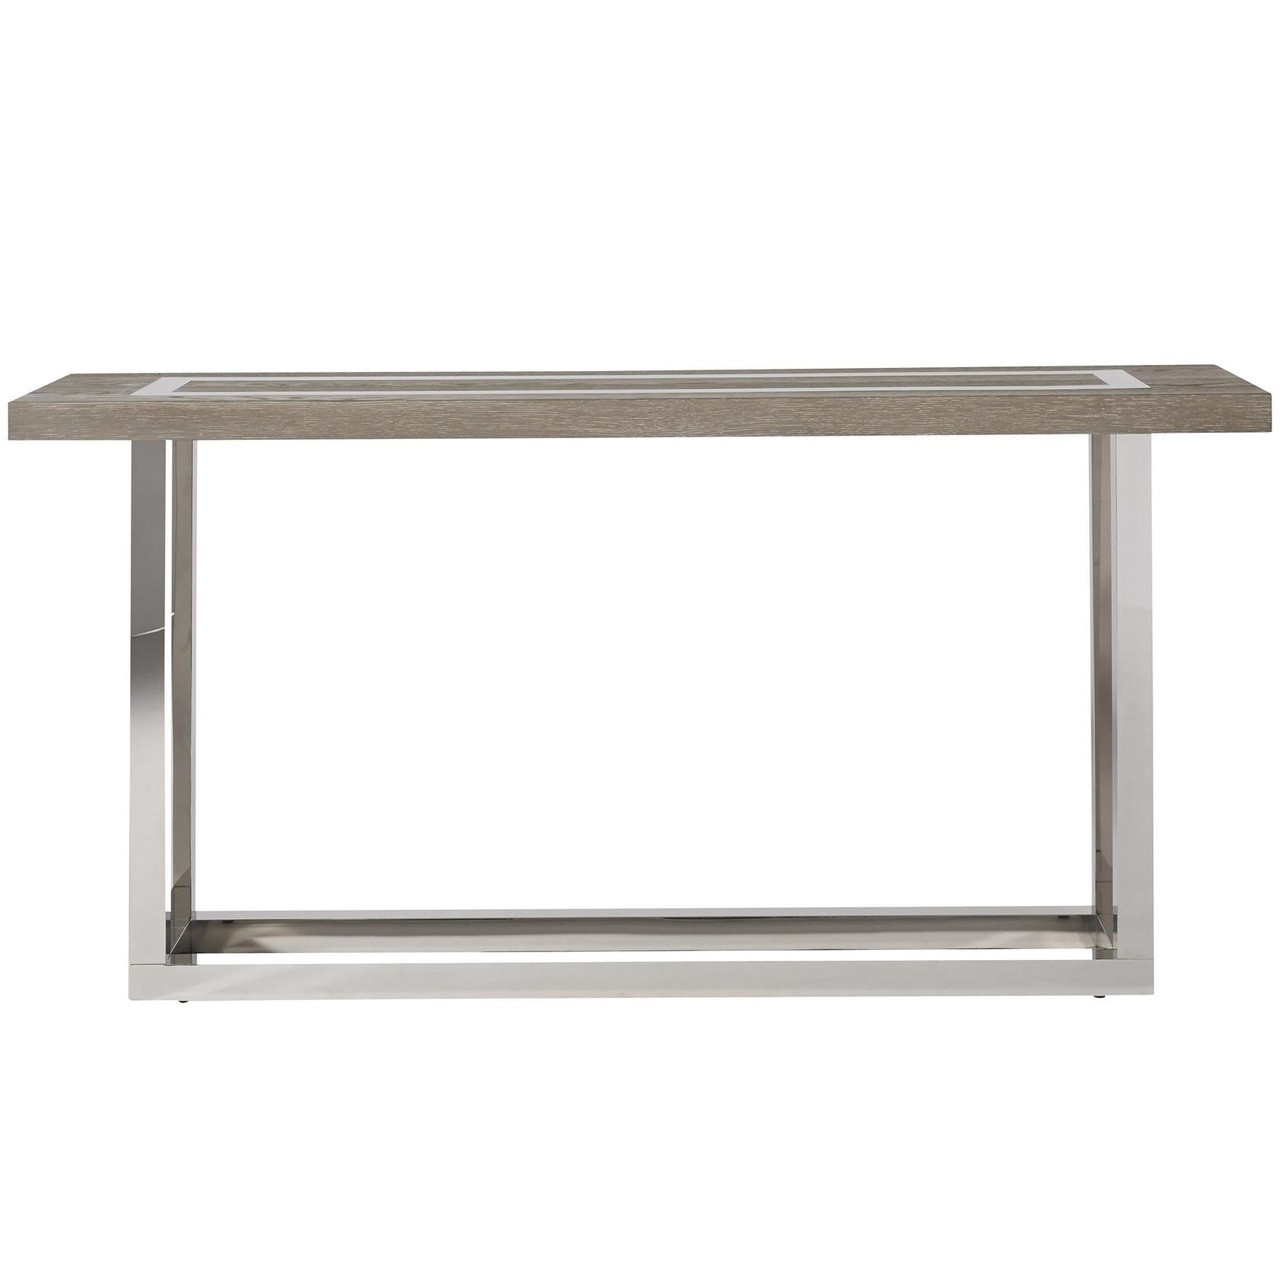 Wyatt modern oak wood stainless steel console table 60 for Contemporary wood console tables